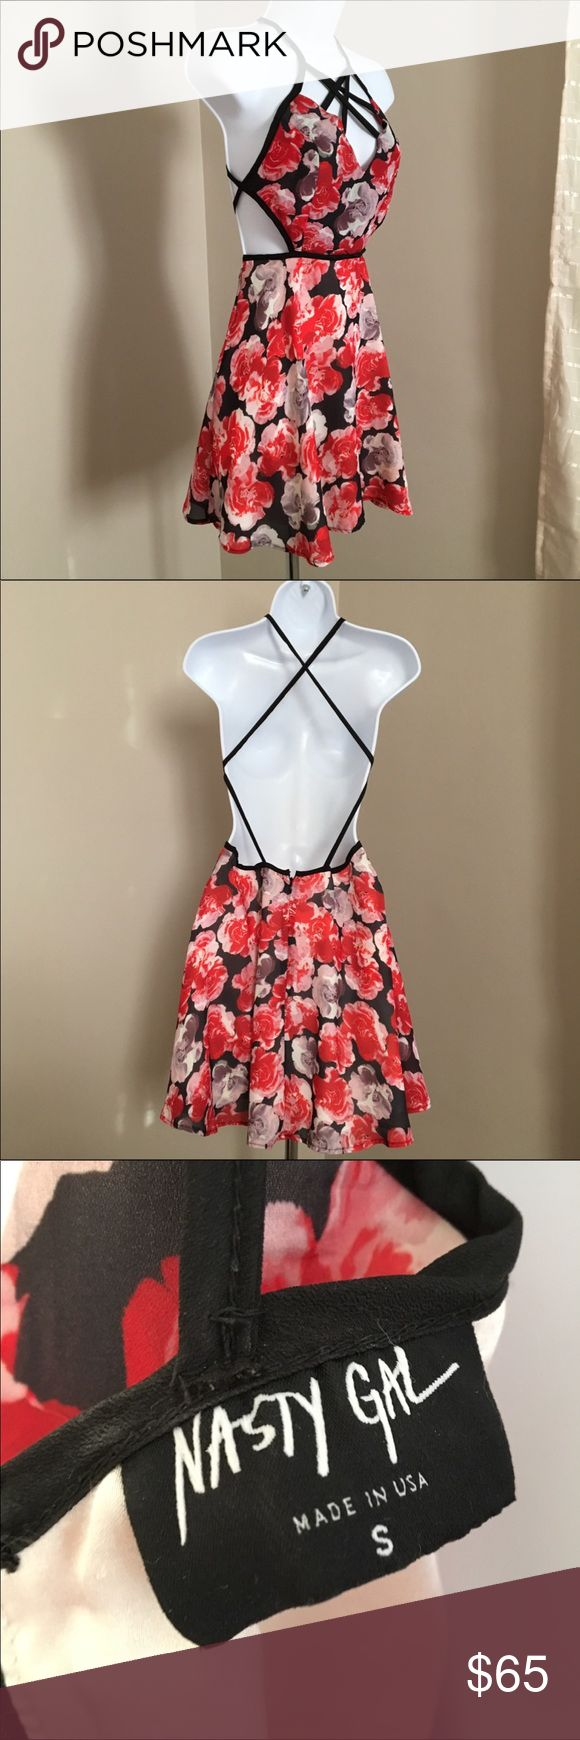 Backless Floral Strappy Nast Gal Mini Dress Barely worn, perfect condition. Beautiful and flattering fit. Moves very well and is great for dancing. Fits a size 2-4. Nasty Gal Dresses Mini